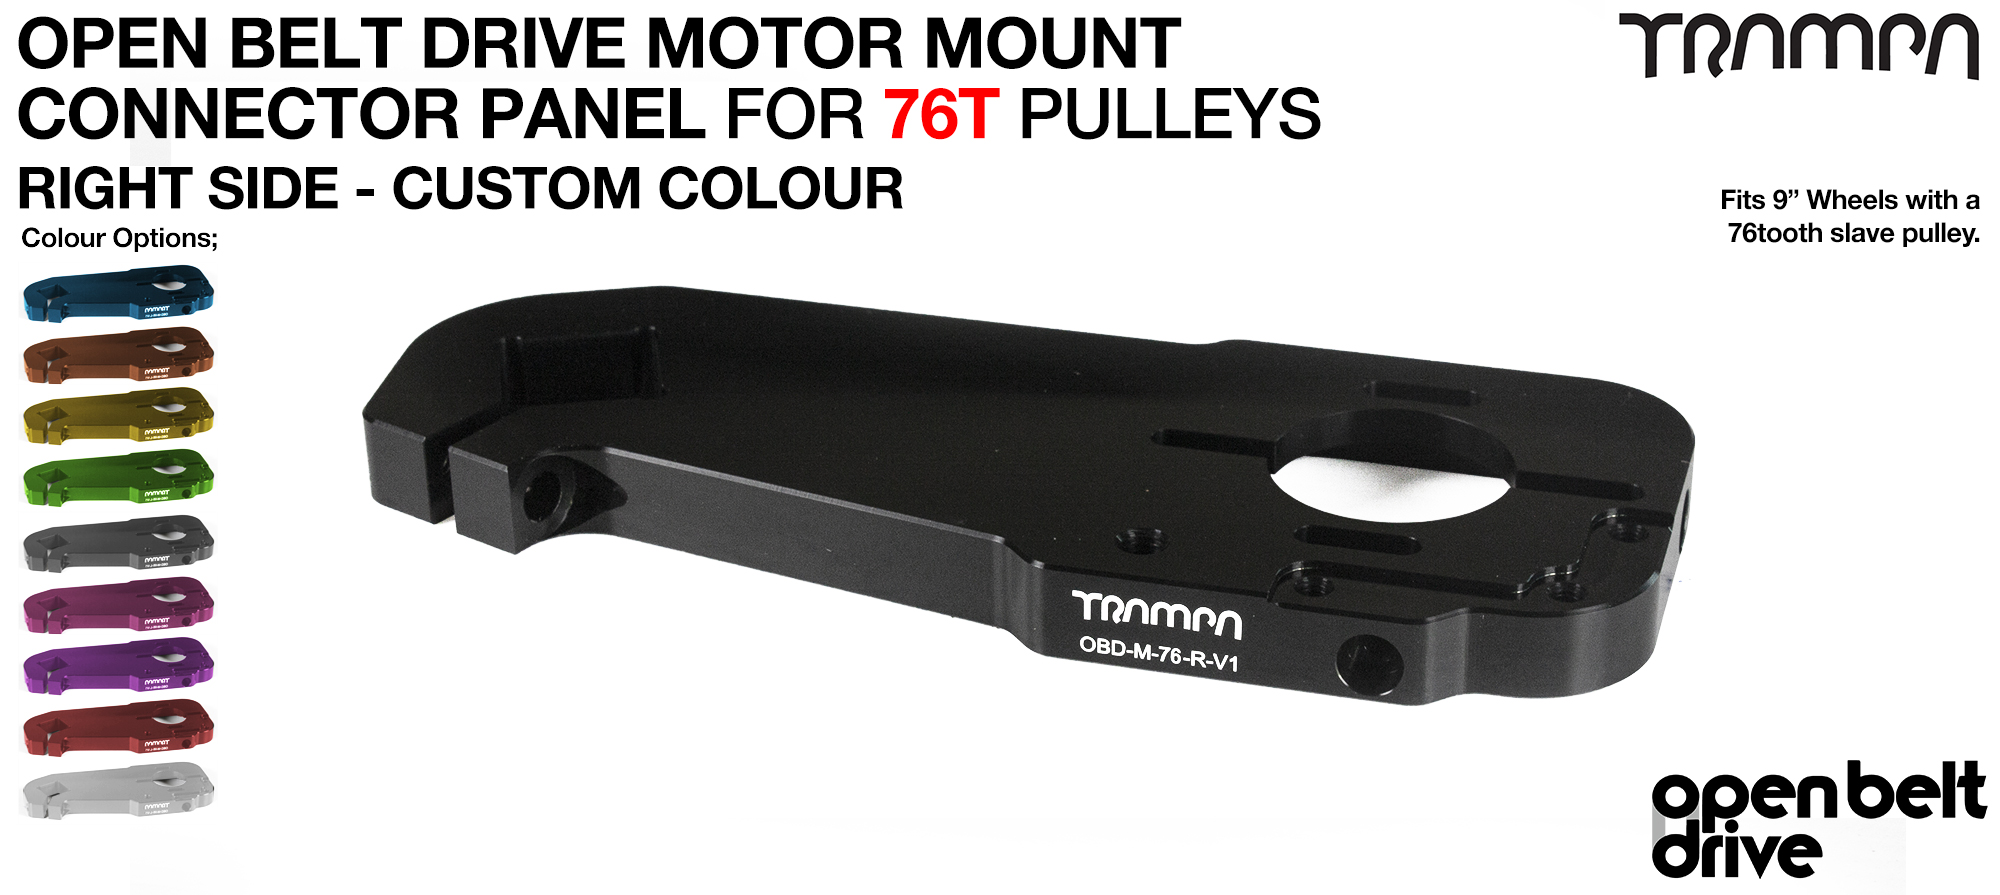 OBD Motor Mount Connector Panel for 76 tooth Pulleys - GOOFY